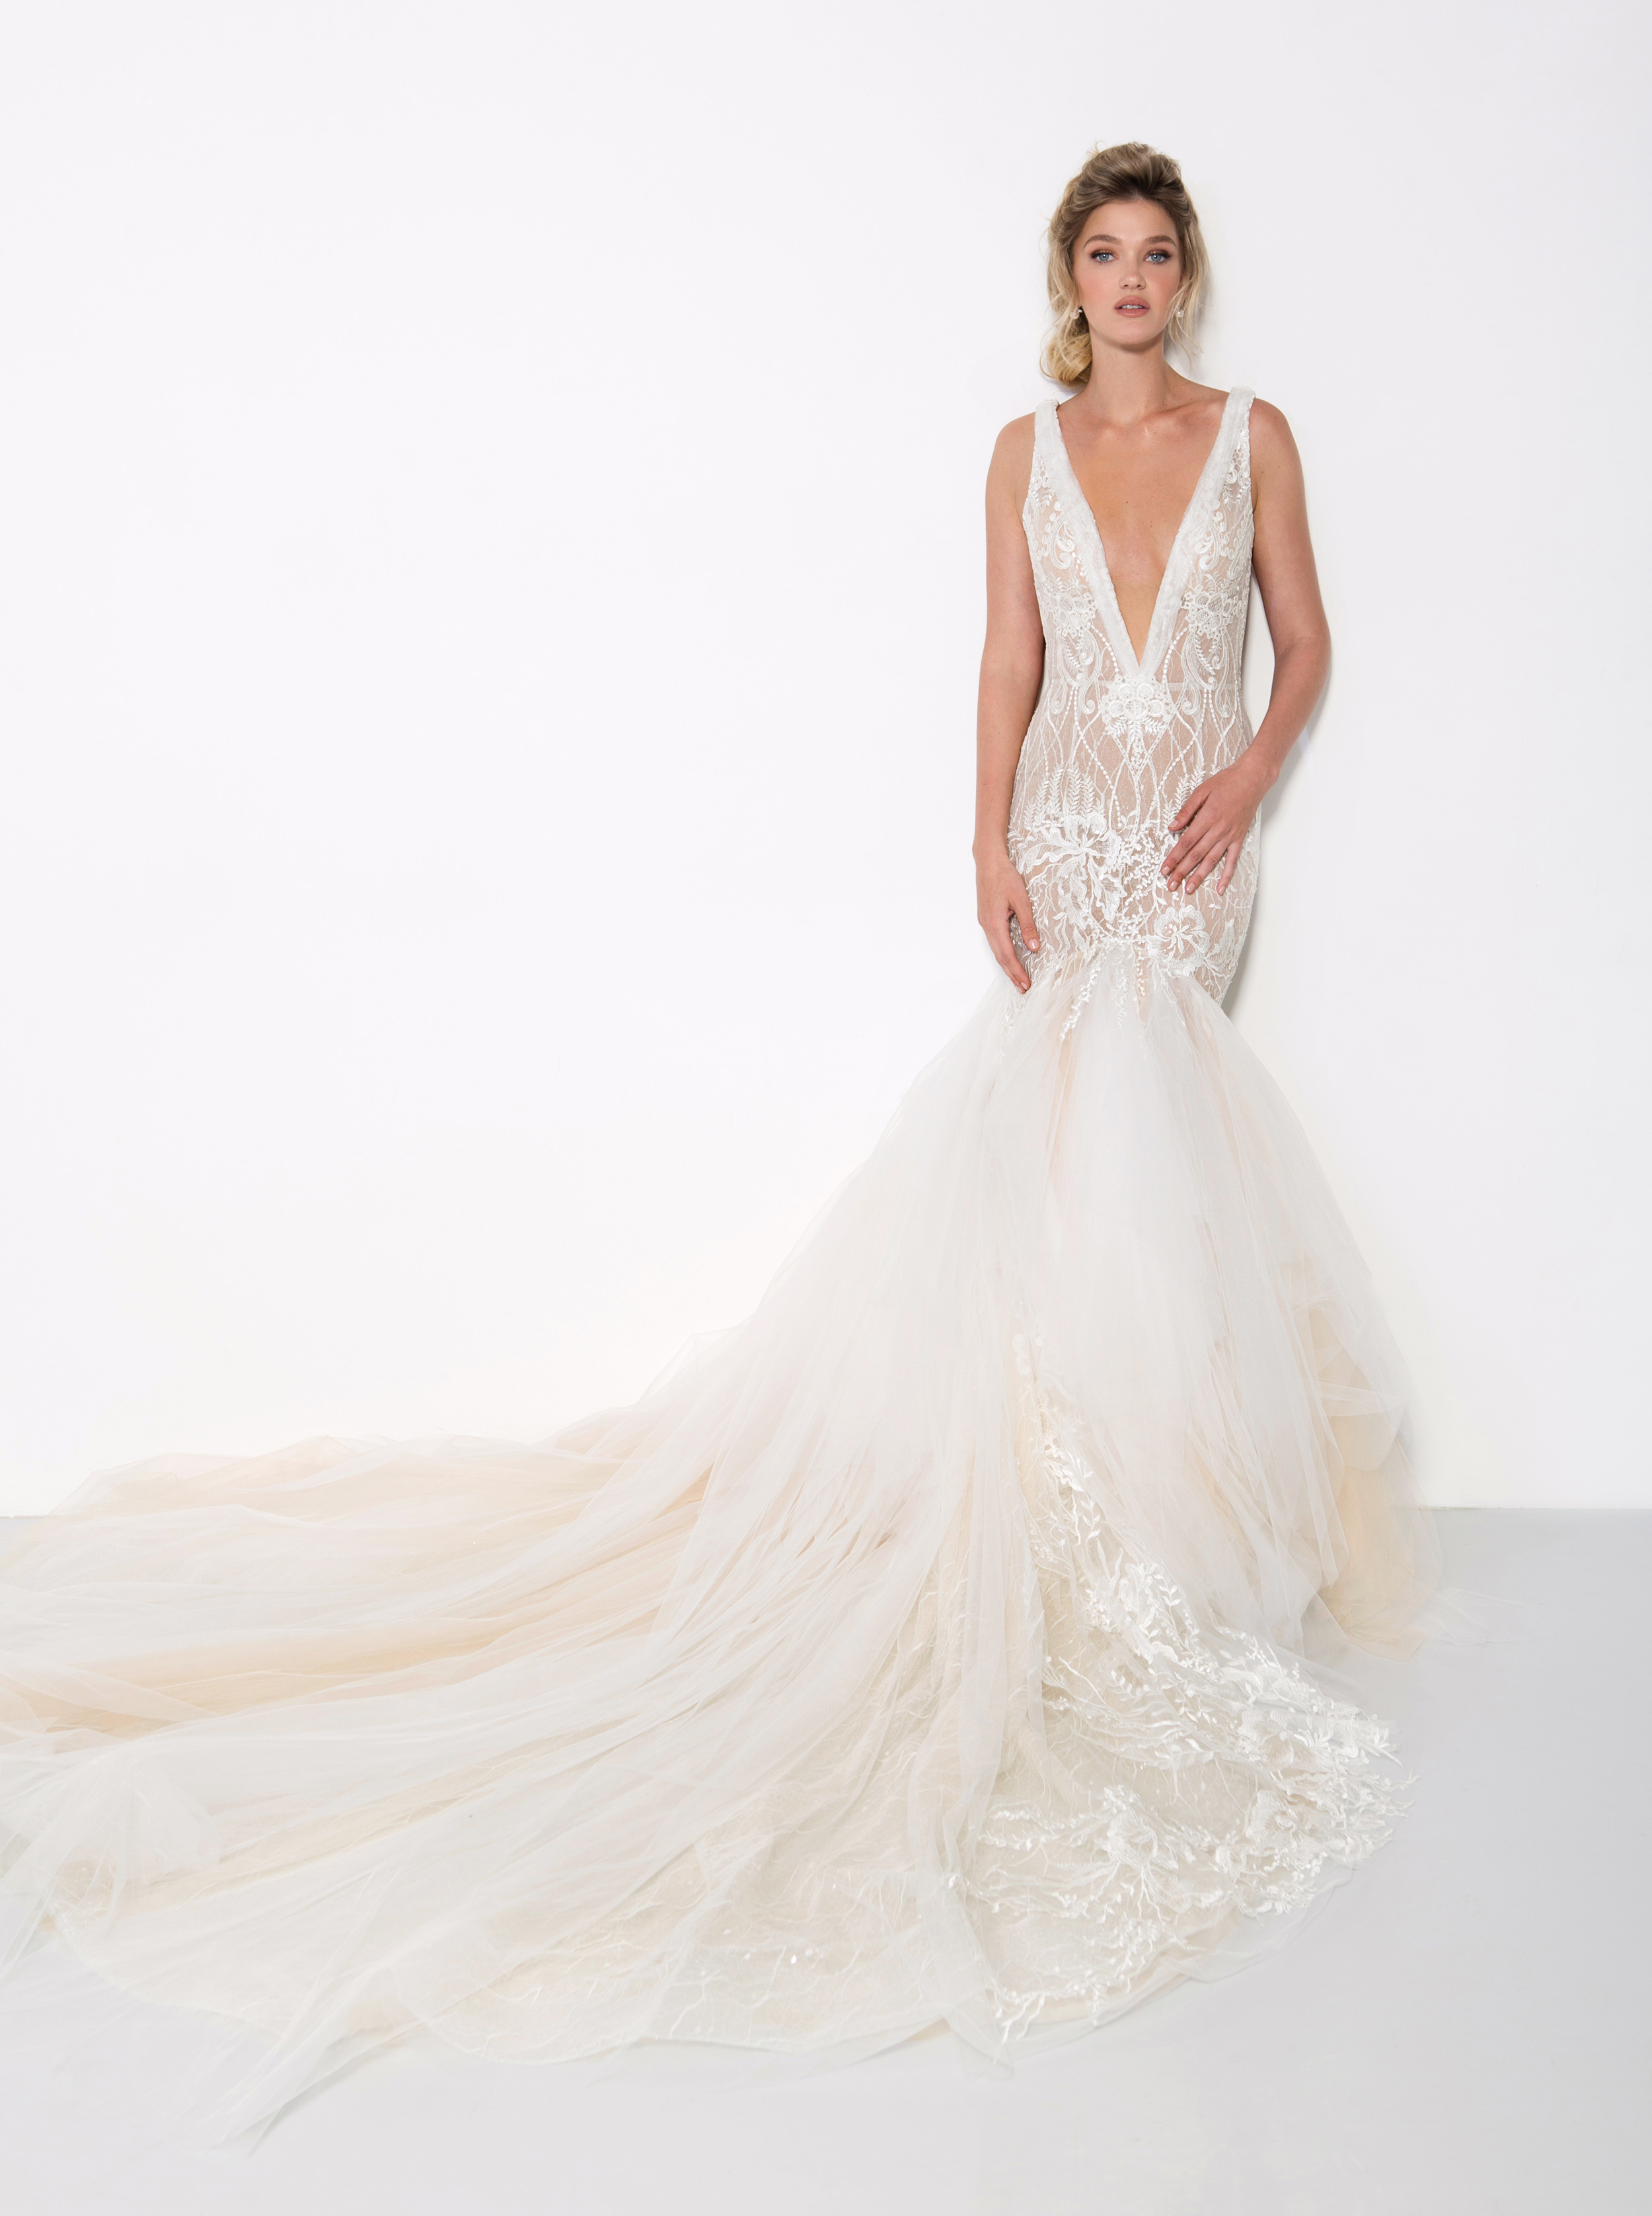 persy wedding dress spring 2019 deep v-neck lace mermaid gown